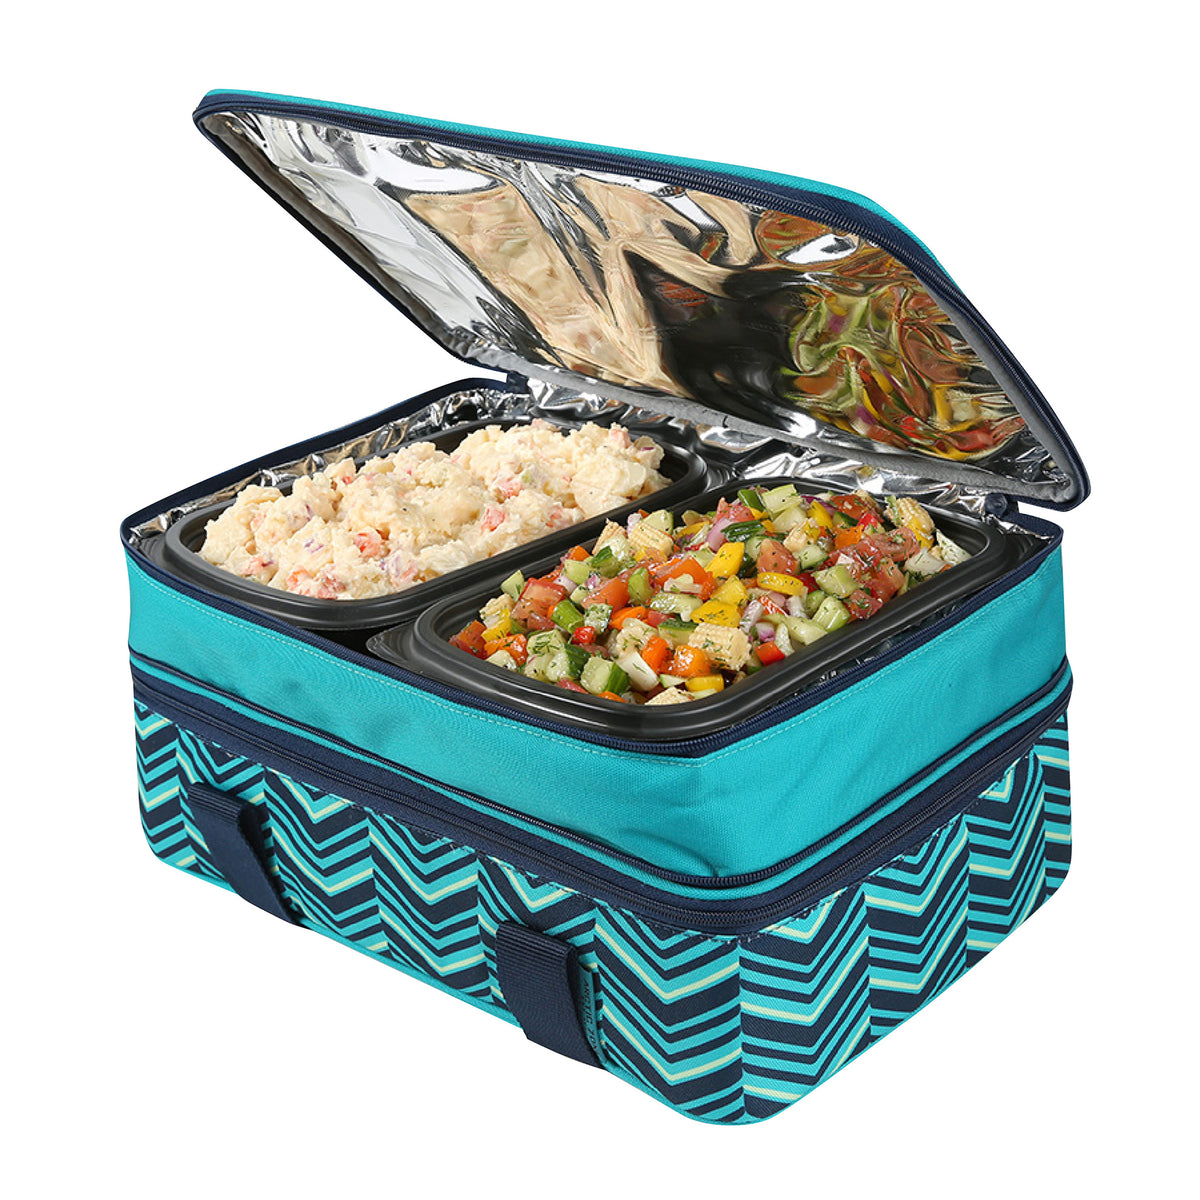 Arctic Zone® Food Pro Expandable Thermal Carrier - Teal - Top propped